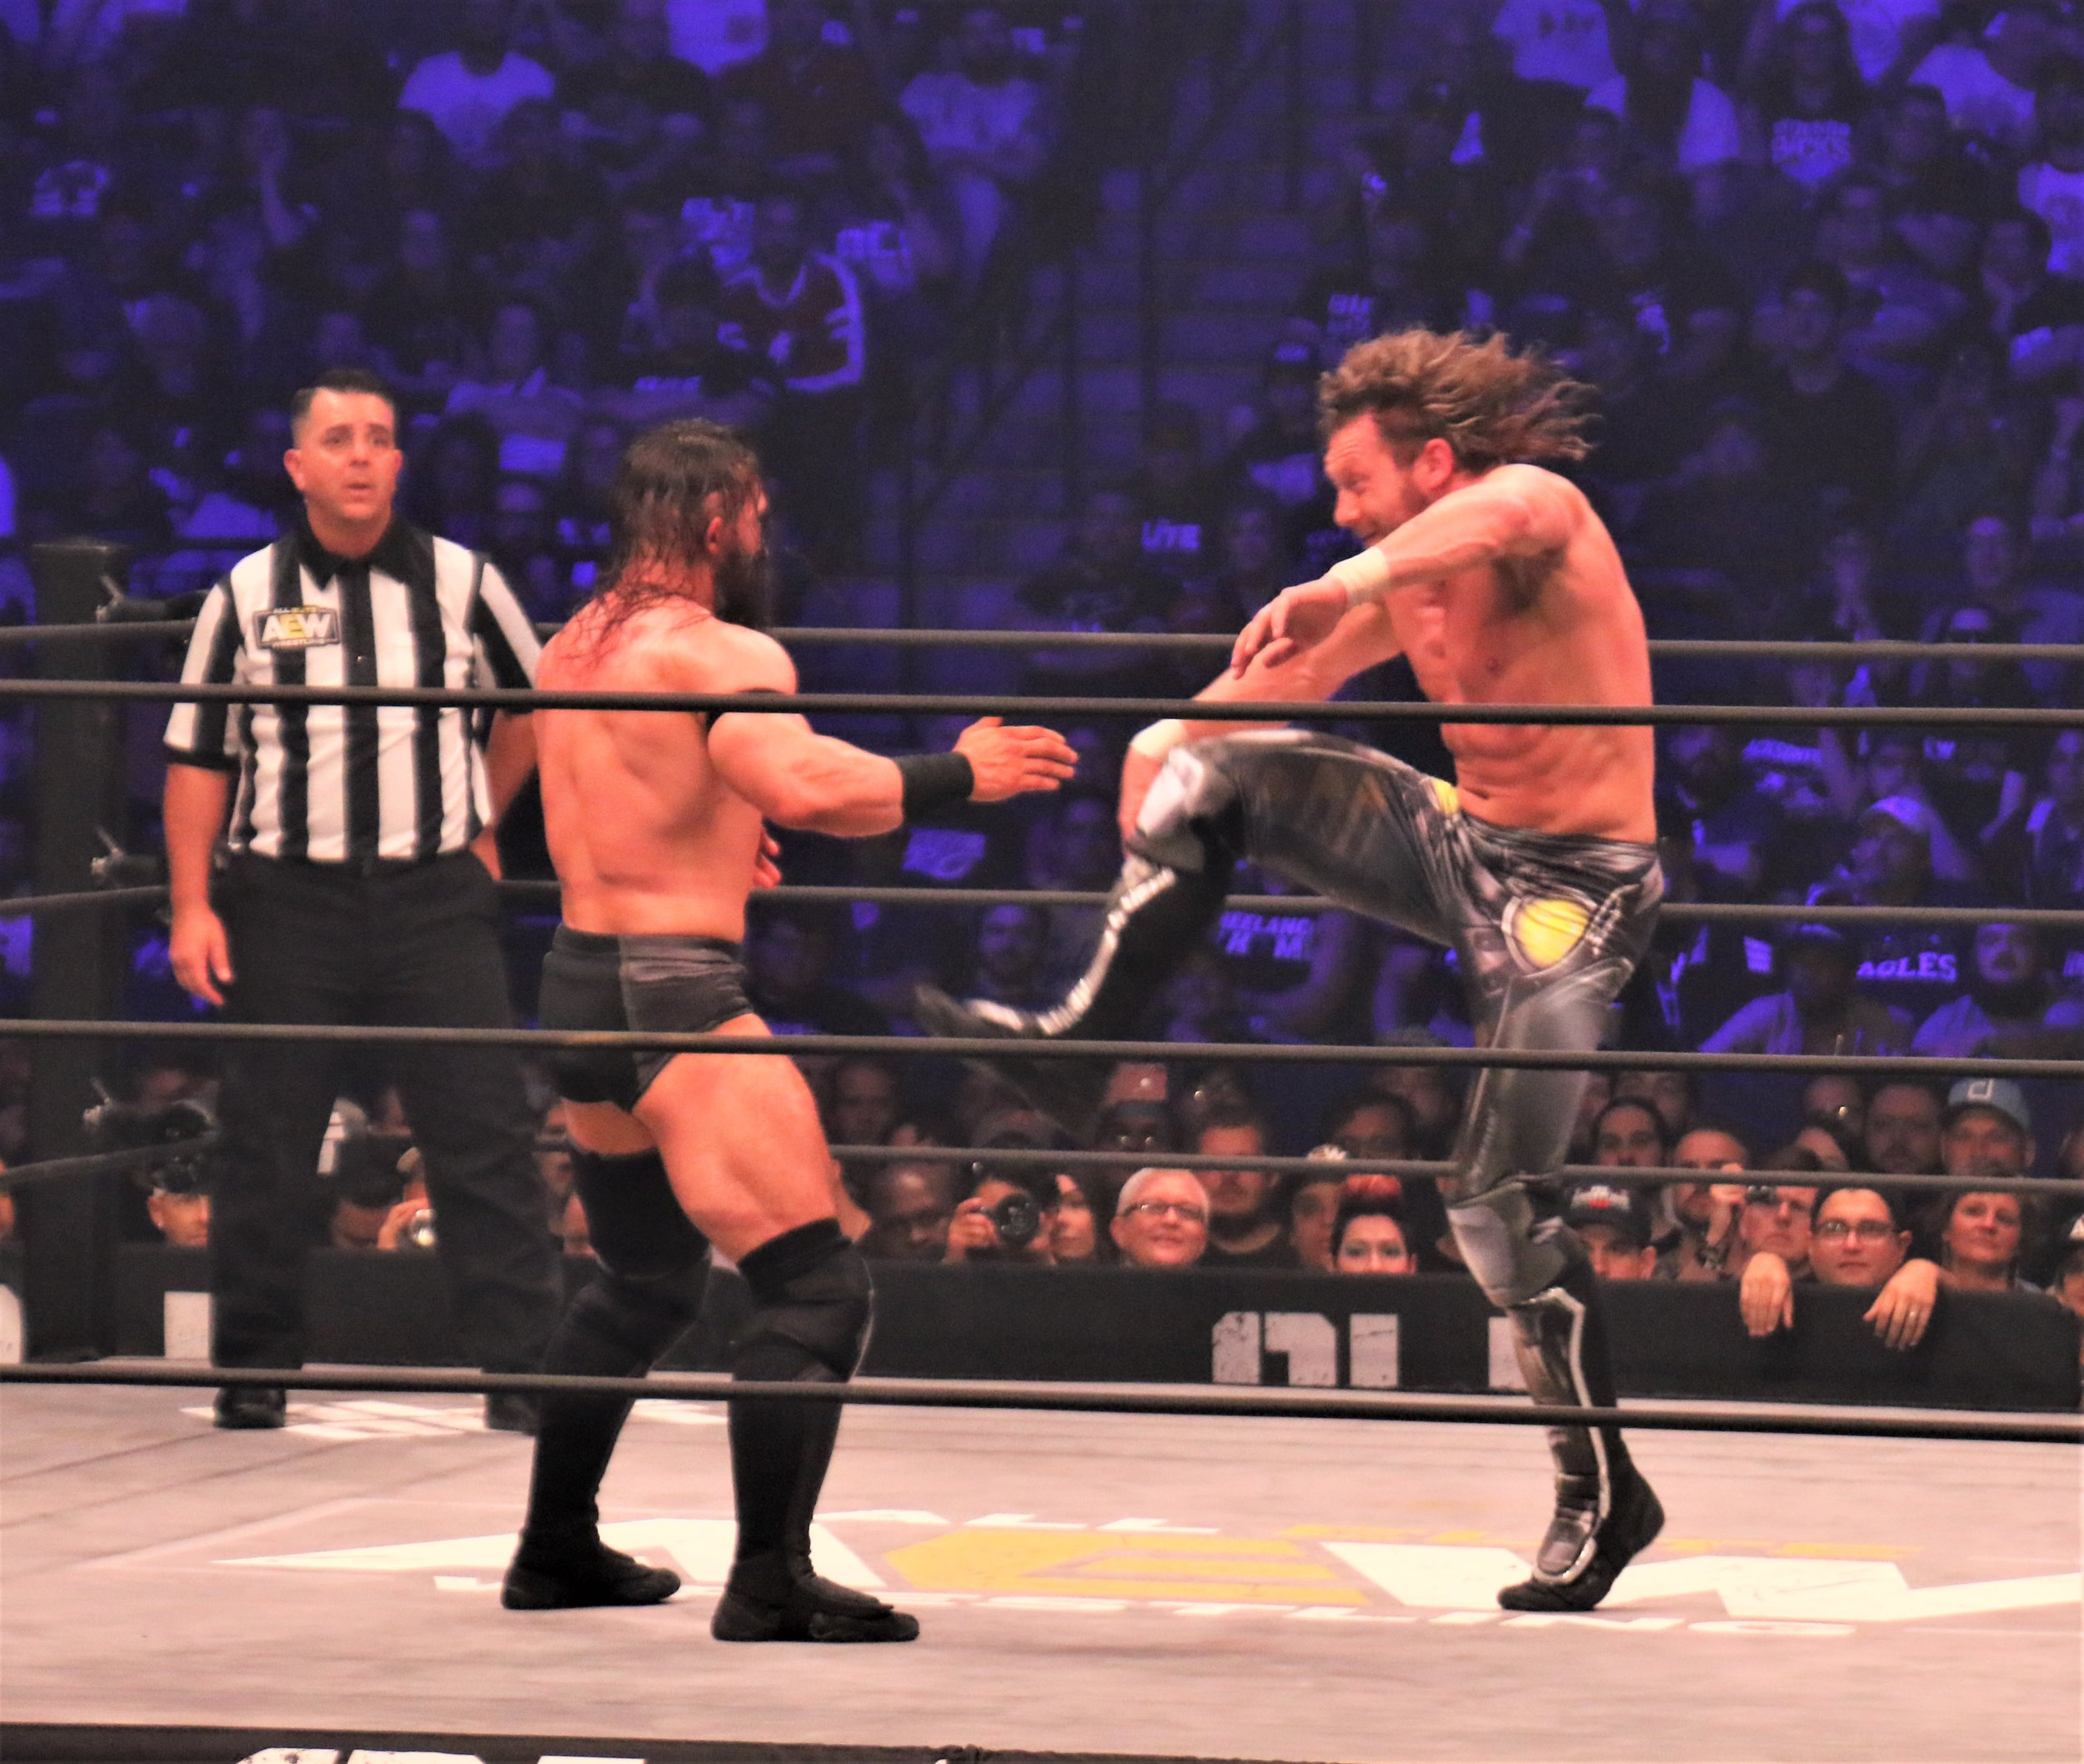 Kenny Omega delivers a kick to PAC.